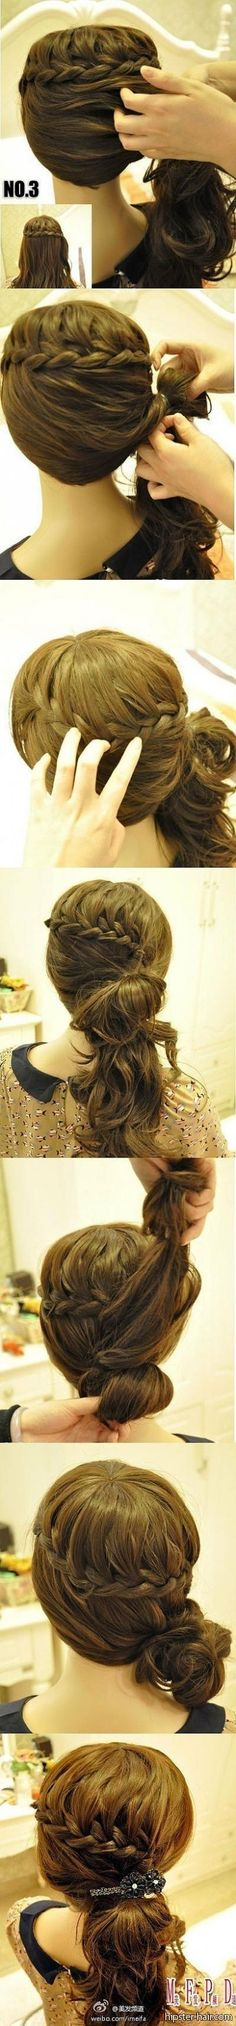 Possible wedding hair Hair: How To Pretty Hairstyles, Girl Hairstyles, Braided Hairstyles, Wedding Hairstyles, Classy Hairstyles, Updo Hairstyle, Braided Updo, Love Hair, Great Hair